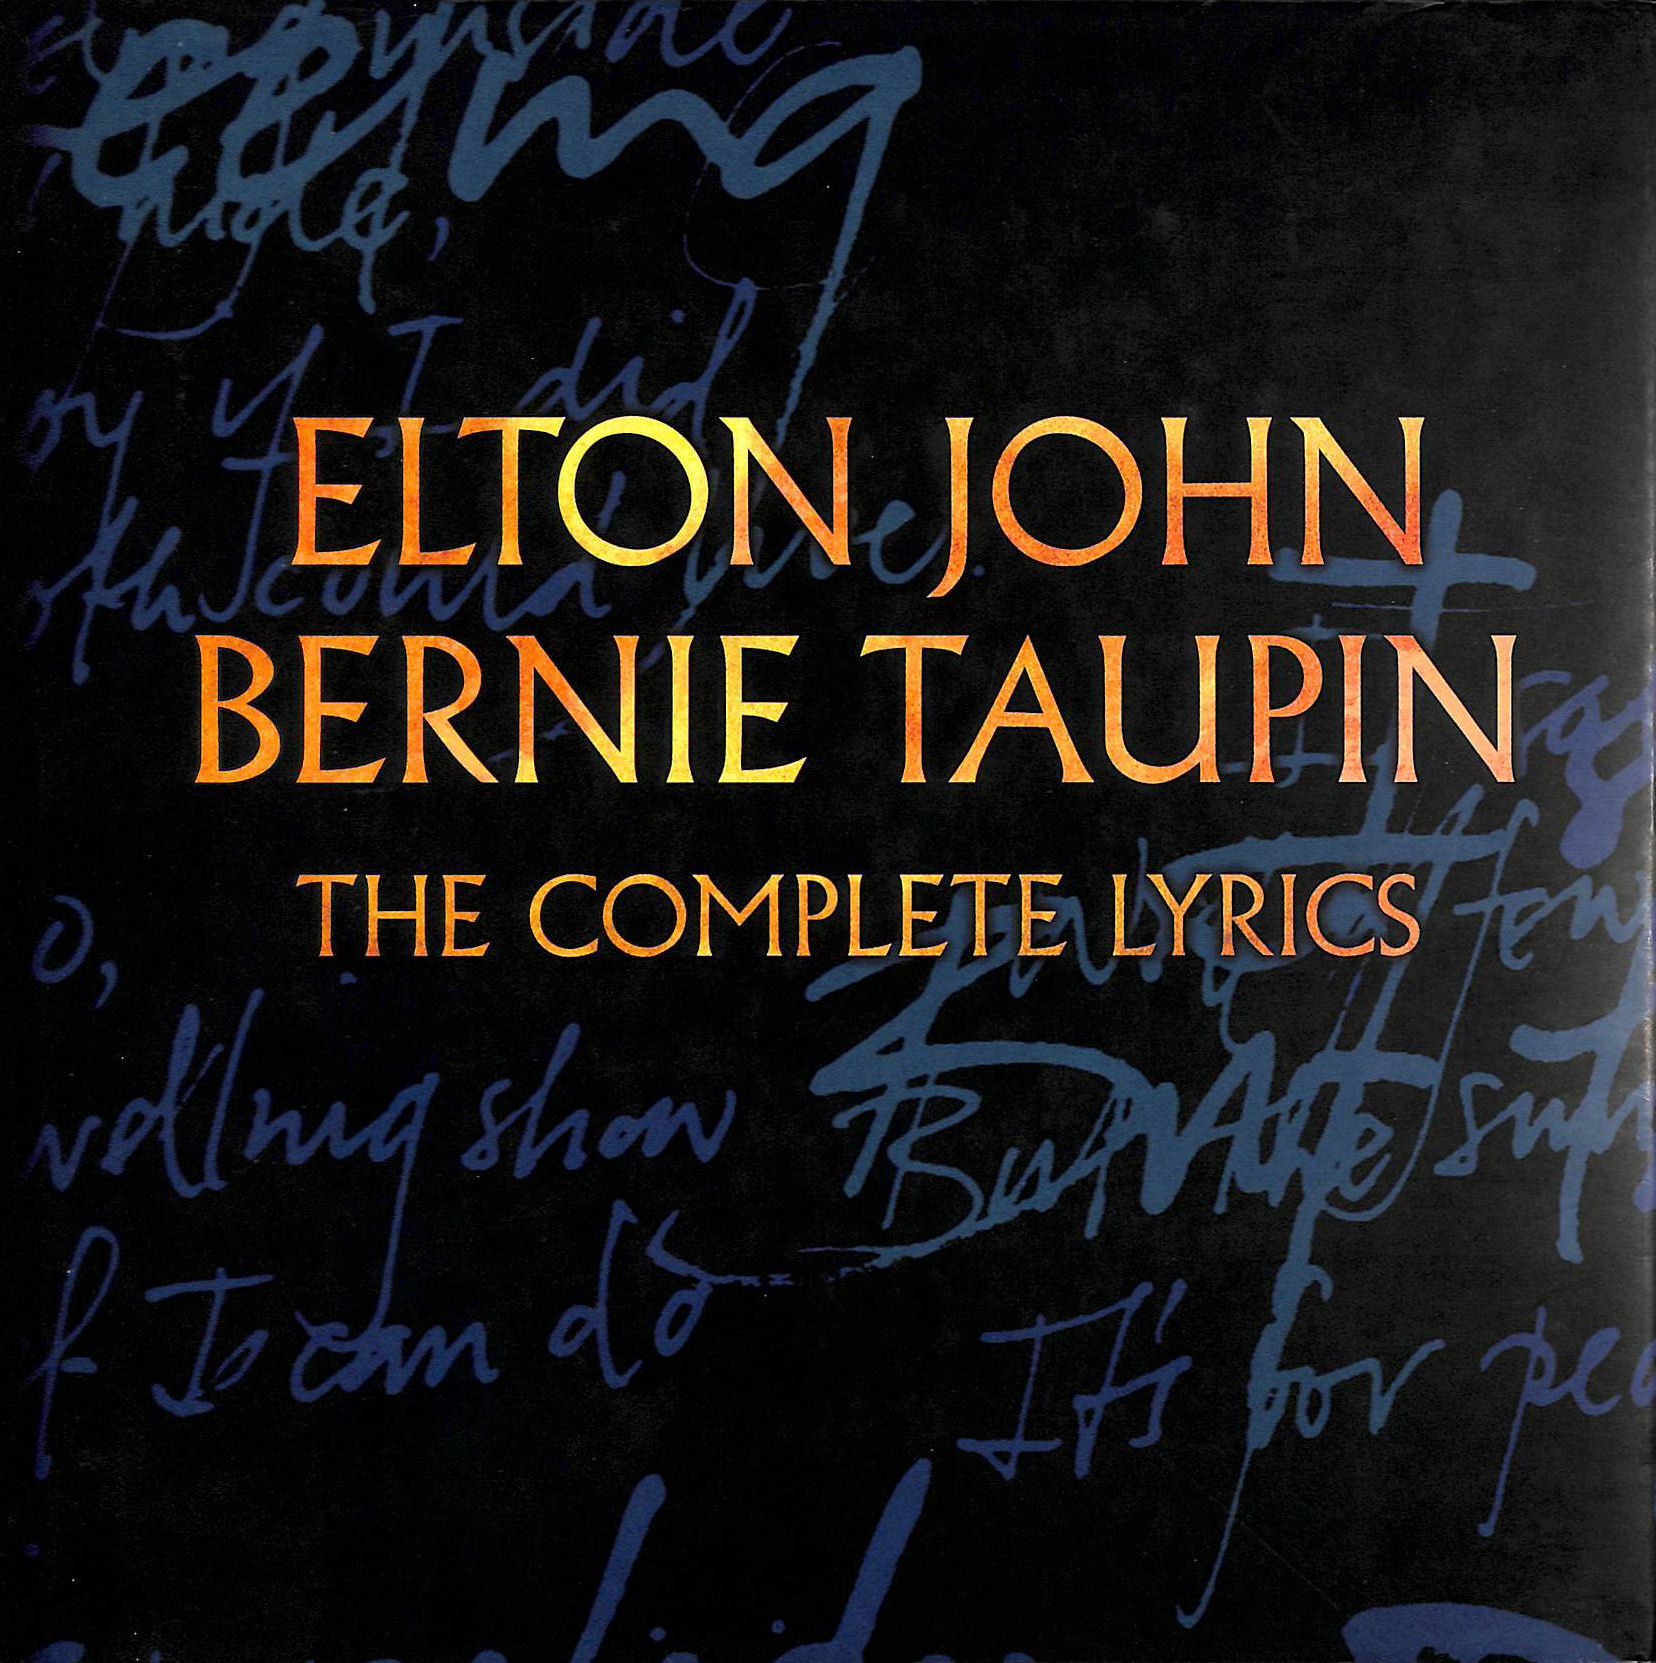 Image for Elton John, Bernie Taupin, The Complete Lyrics